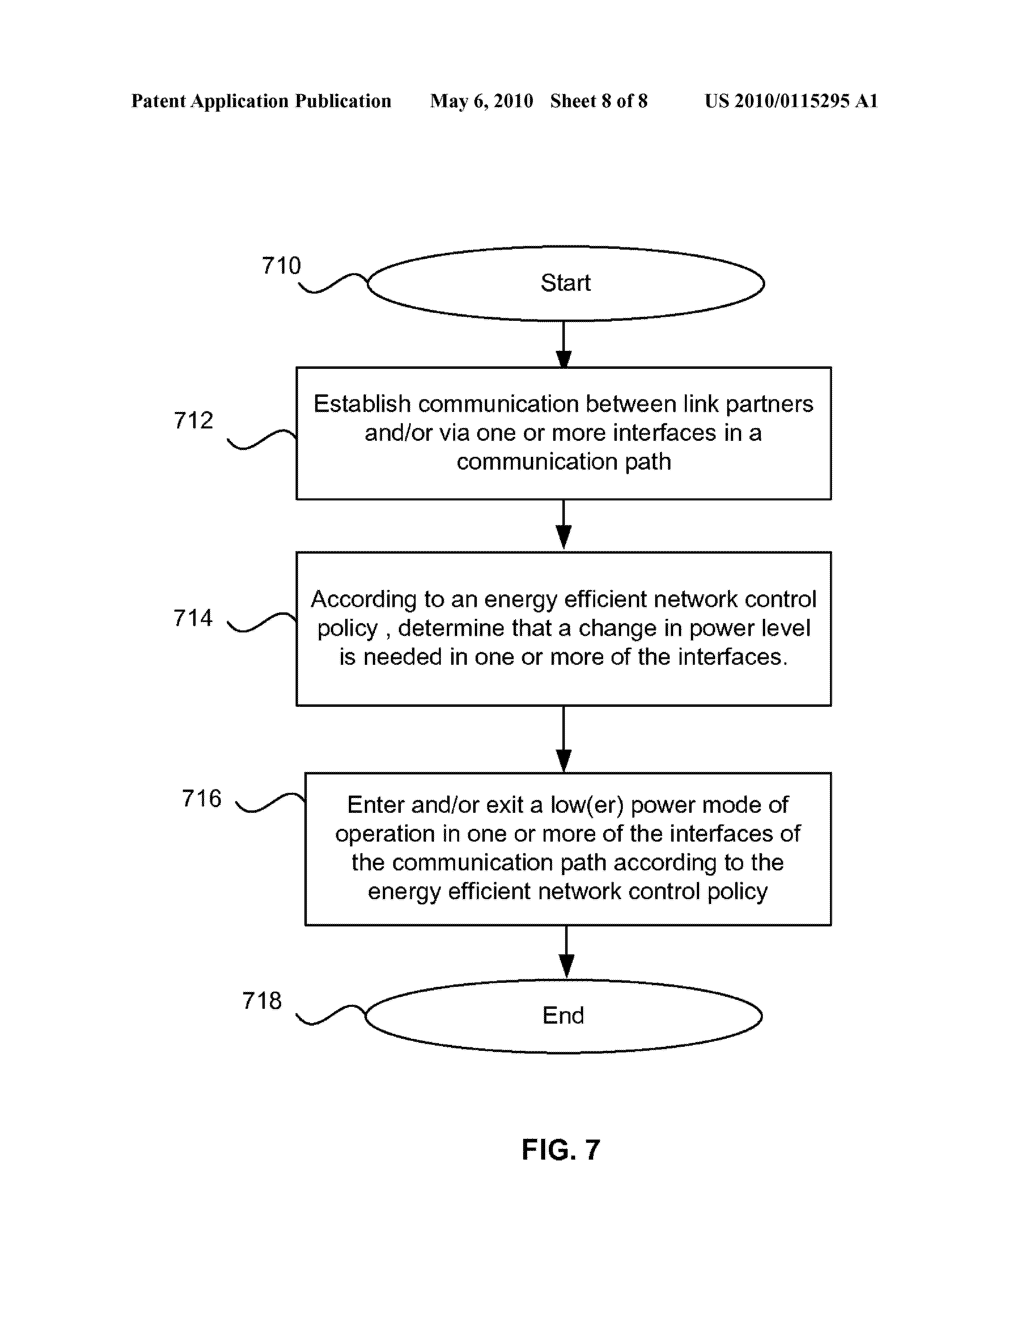 Method And System For Energy Efficient Communication Among One Or More Interfaces In A Communication Path - diagram, schematic, and image 09